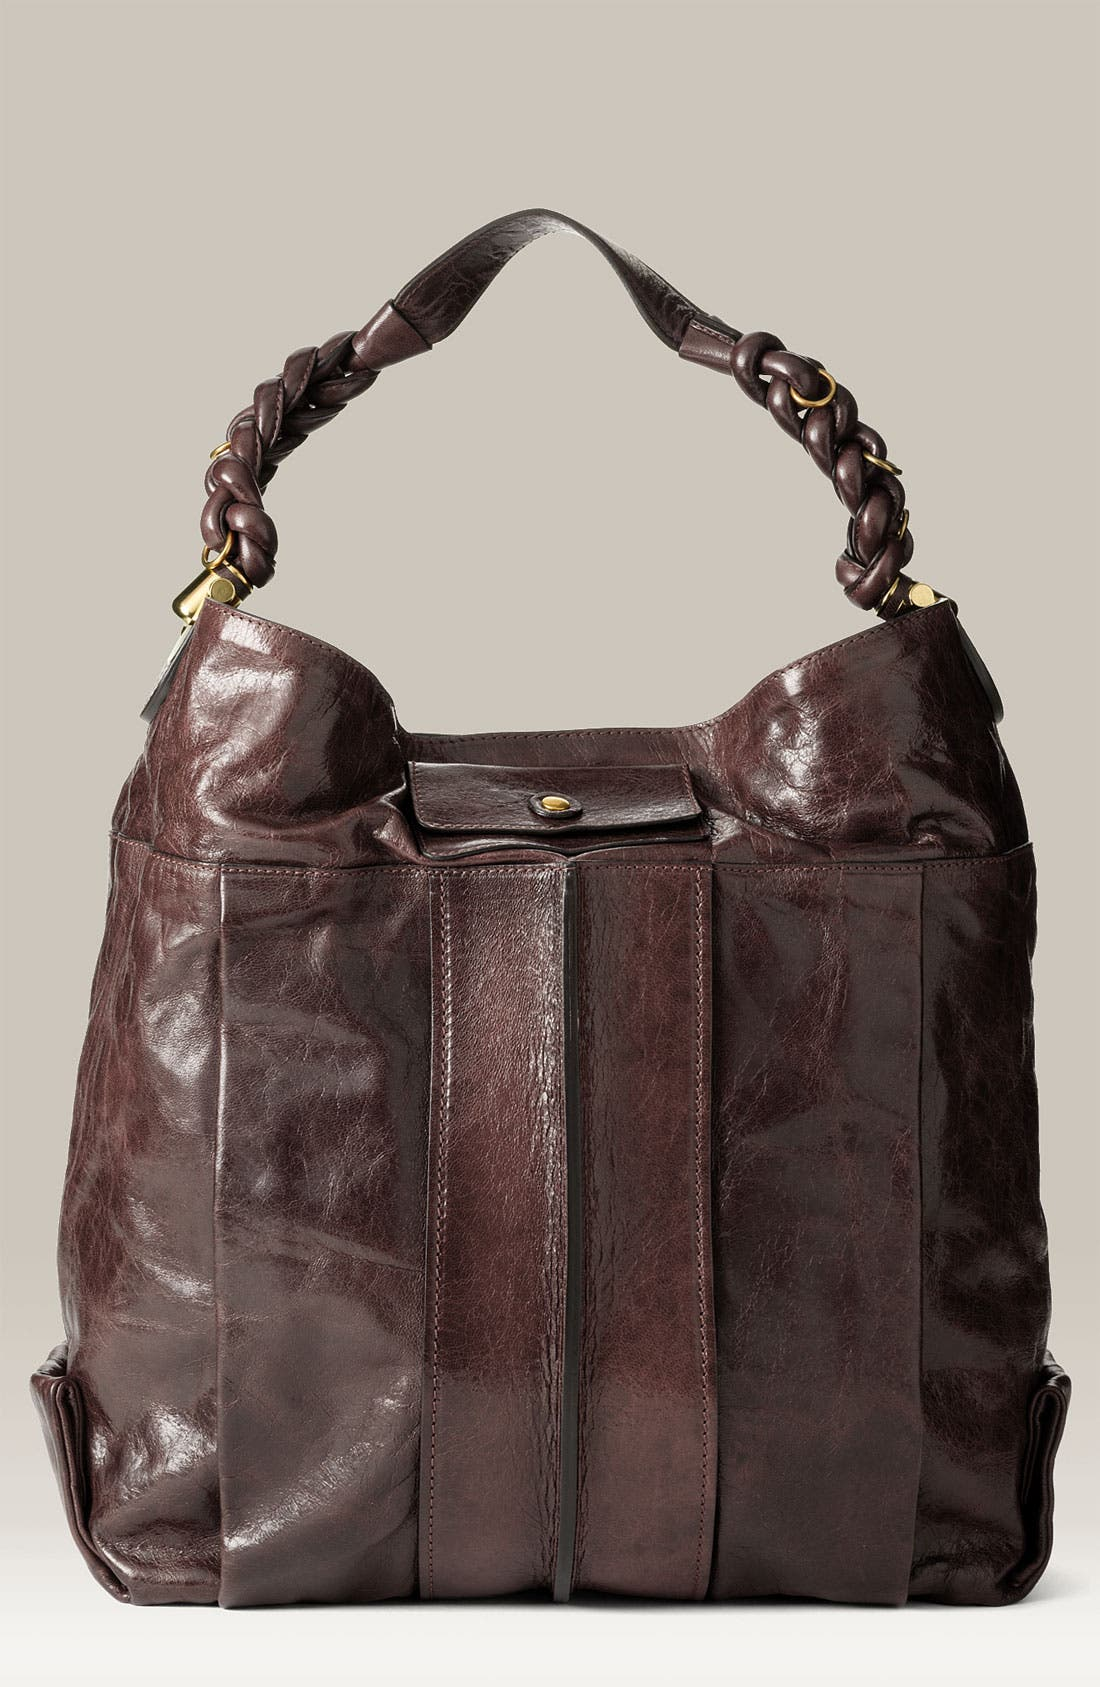 Alternate Image 1 Selected - Chloé 'Heloise' Leather Hobo